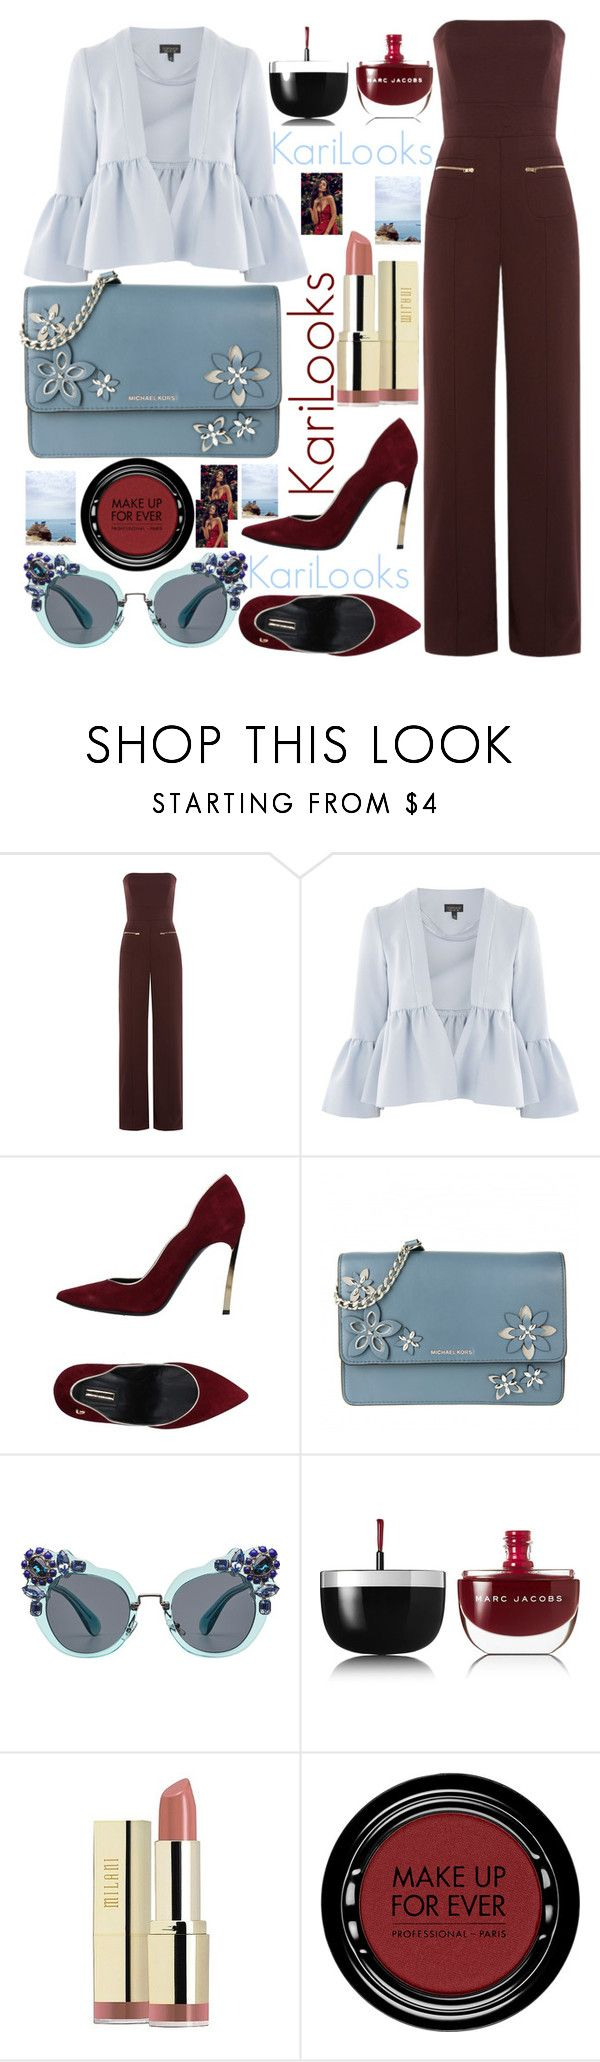 """Untitled #233"" by karilooks ❤ liked on Polyvore featuring Maison Margiela, Topshop, byblos, MICHAEL Michael Kors, Miu Miu, Marc Jacobs, Milani and MAKE UP FOR EVER"